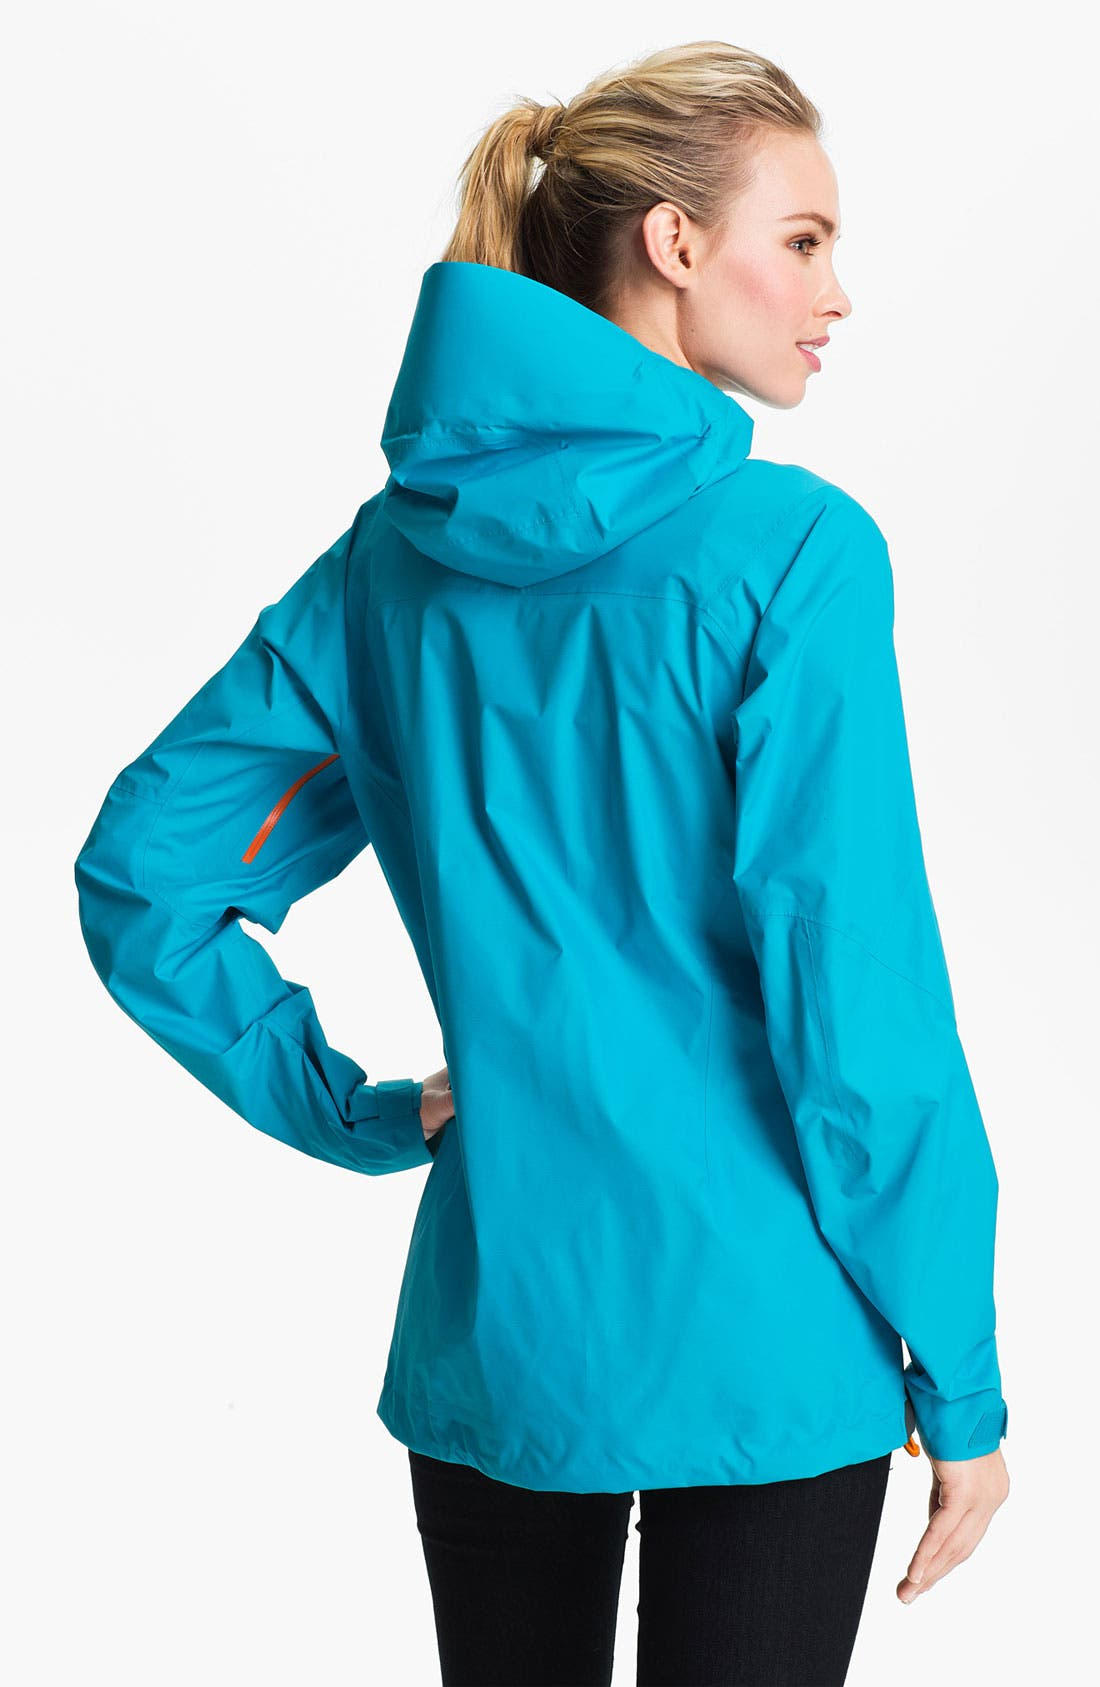 PATAGONIA,                             'Super Cell' Jacket,                             Alternate thumbnail 2, color,                             400